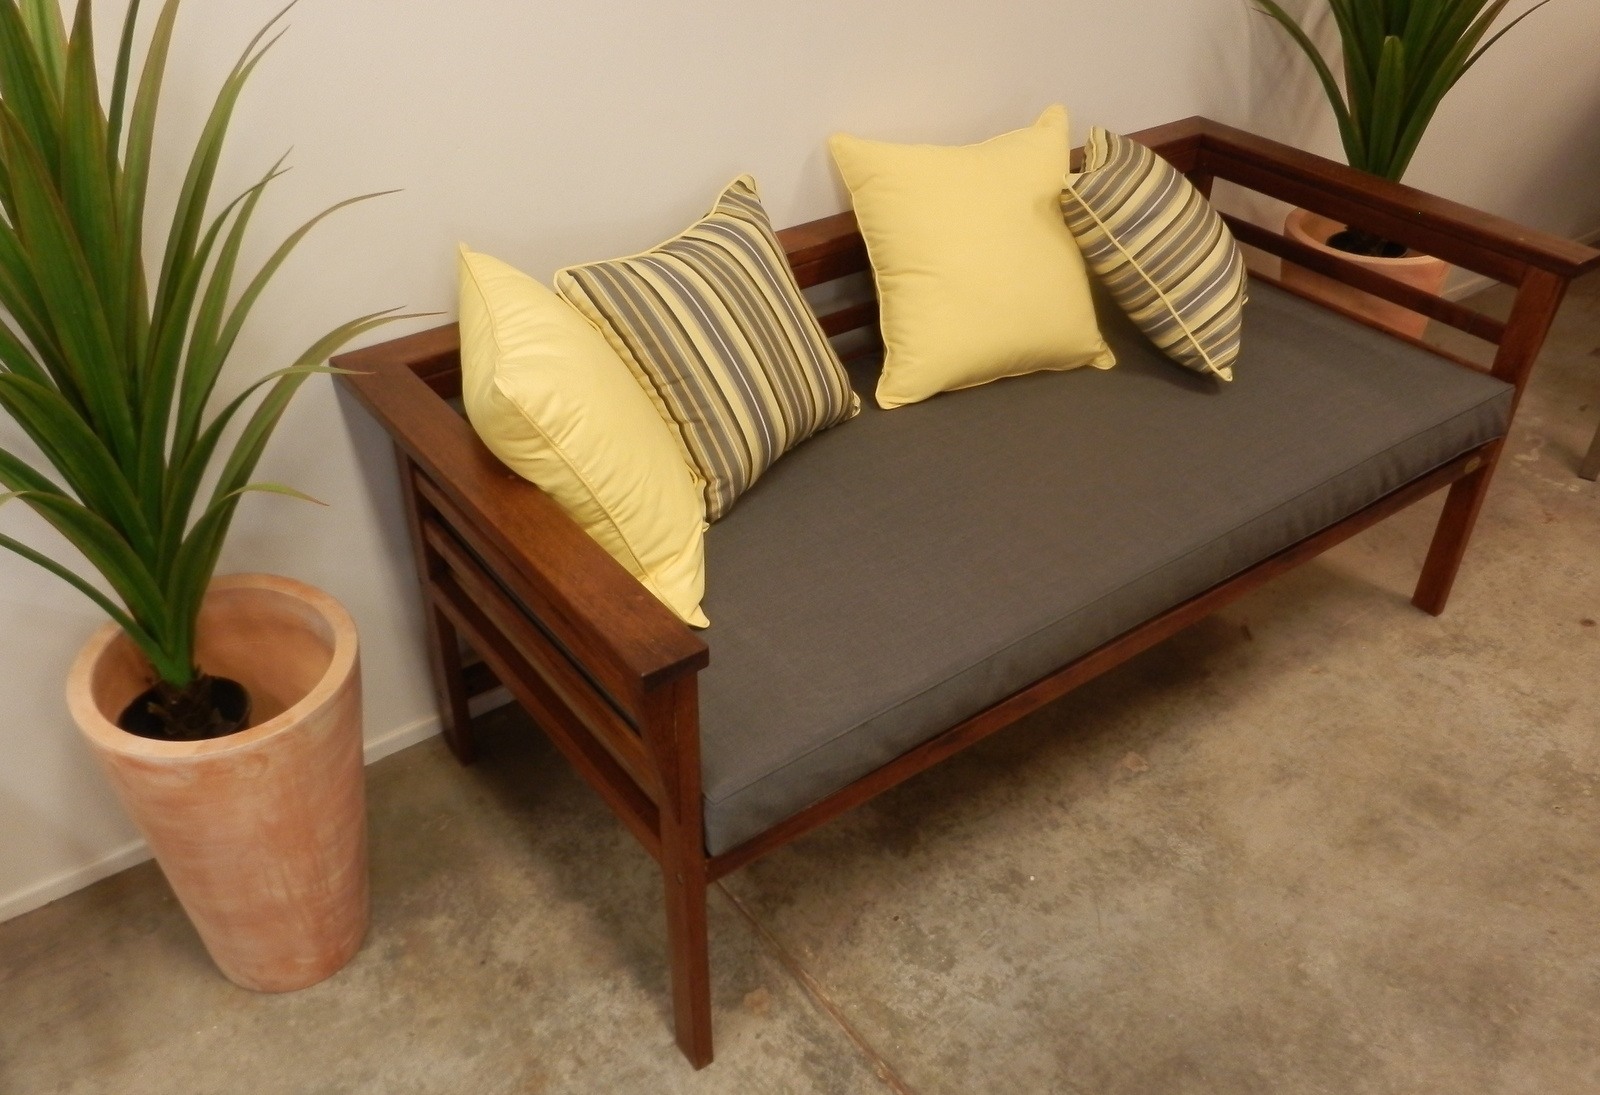 Nightingale Day Bed - Outdoor Day Beds Brisbane - AGFC on Belham Living Lilianna Outdoor Daybed id=38137